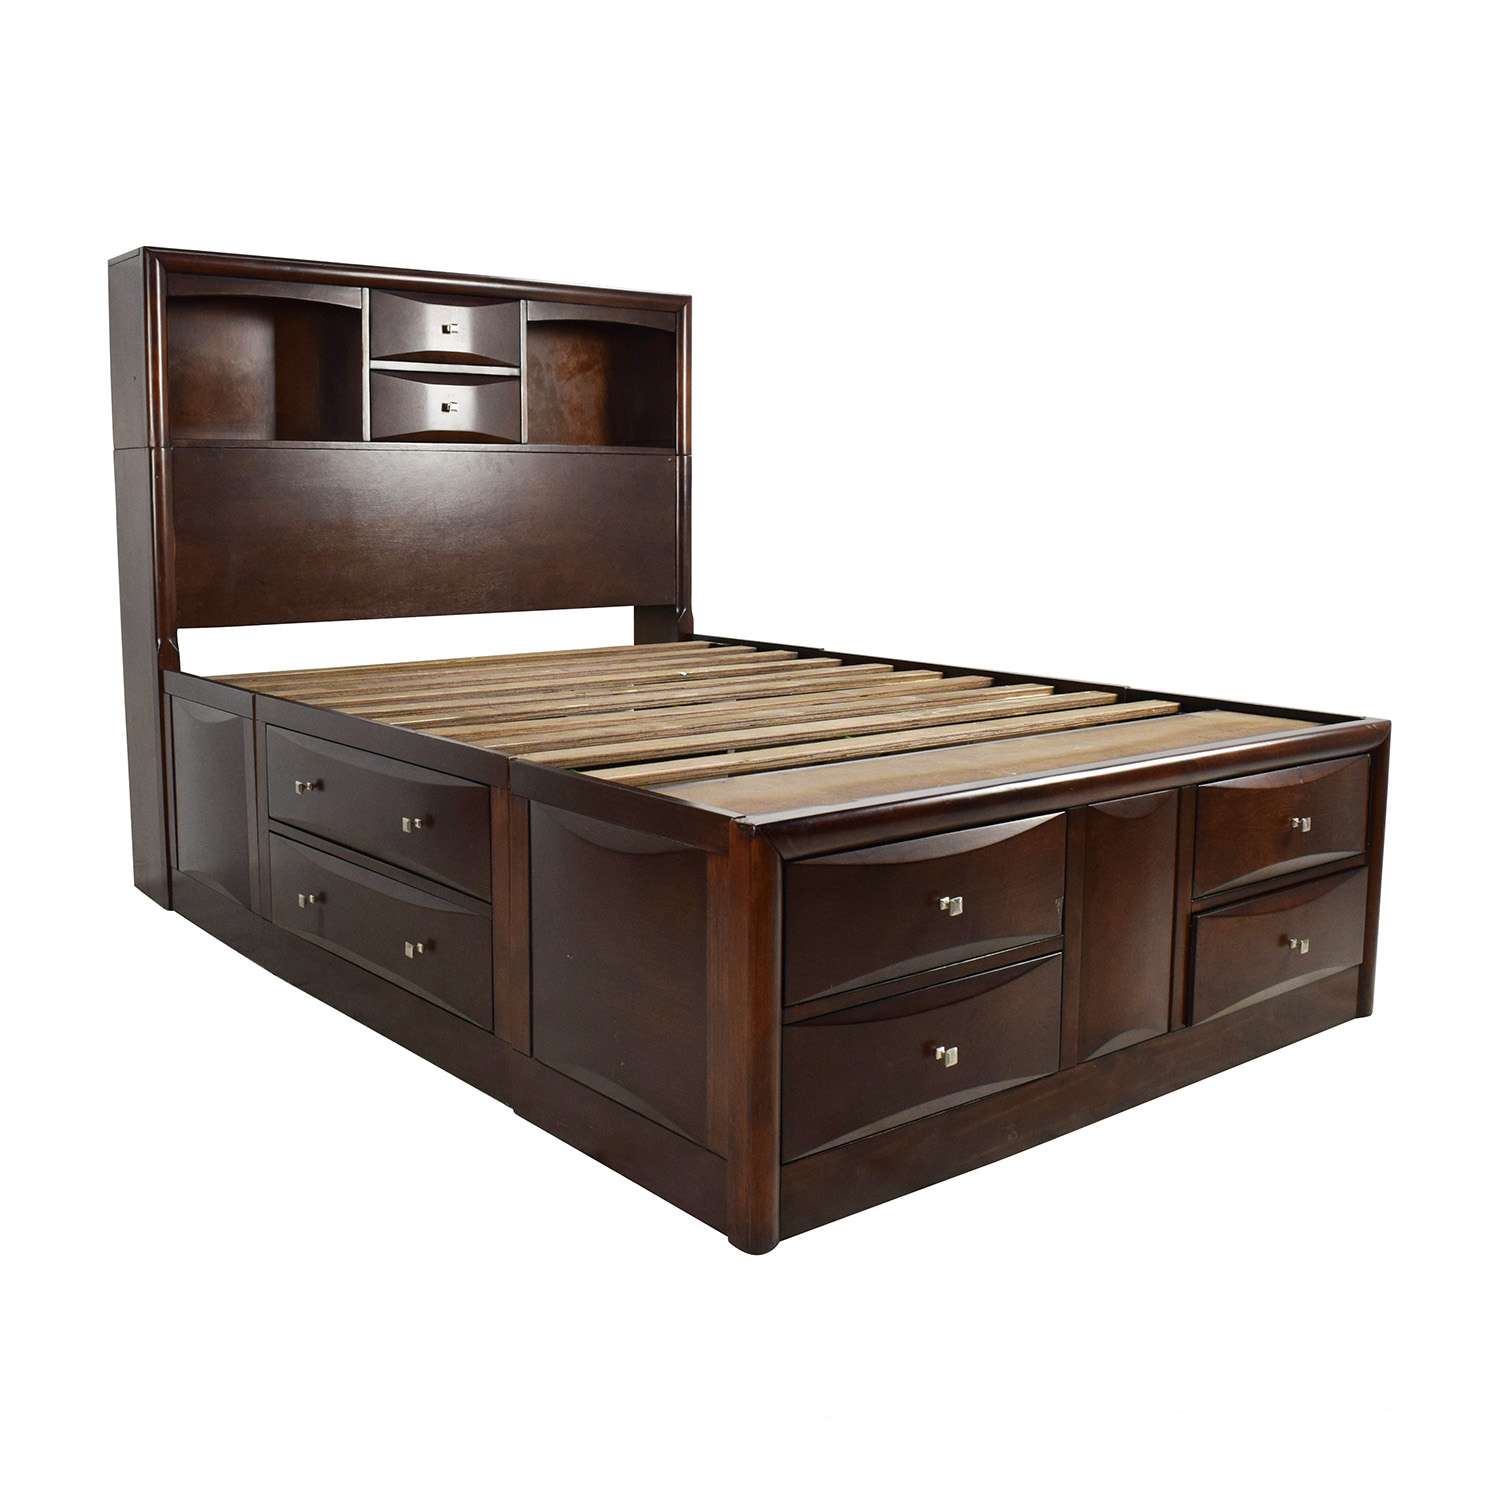 56 off roundhill furniture roundhill furniture emily for Full bed and dresser